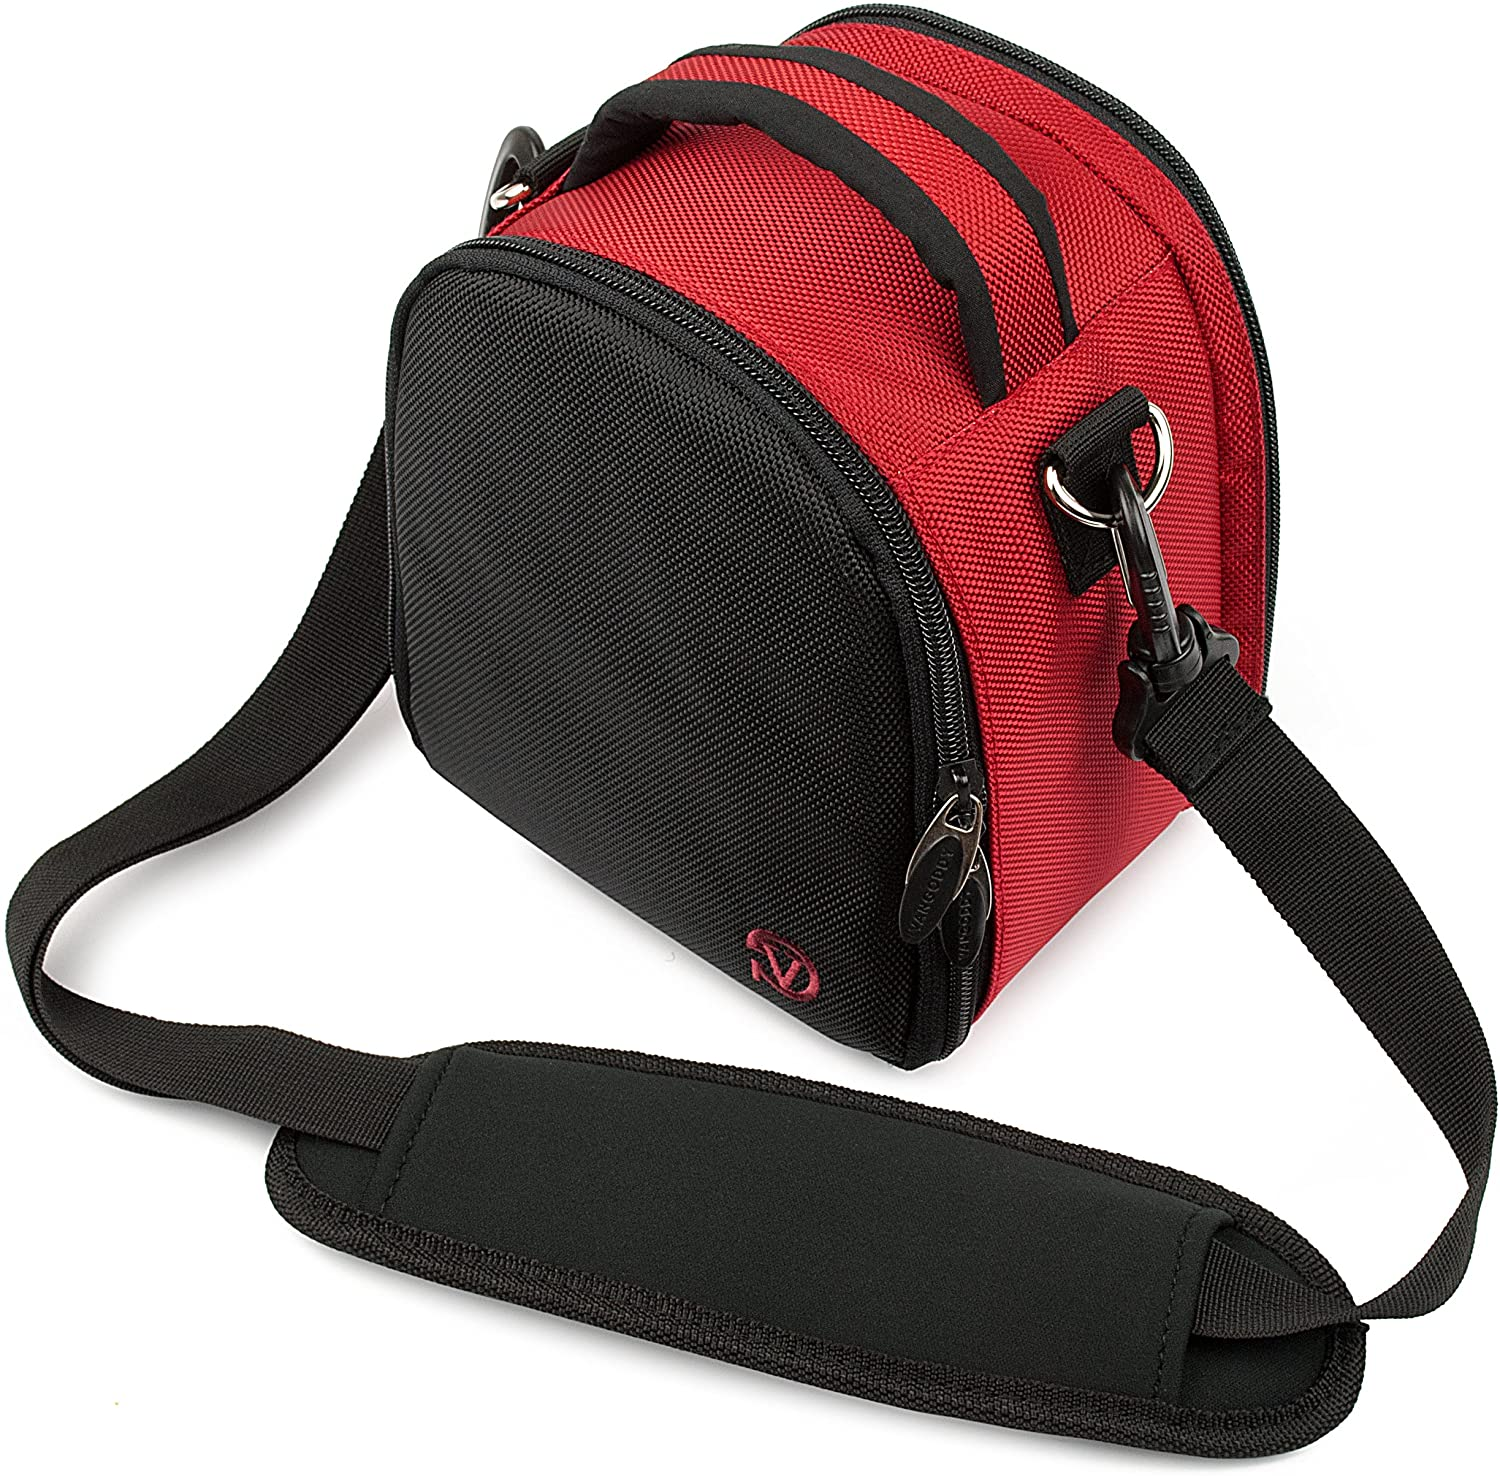 Ultralight Camera Case Red Bag with Attachable Strap for Ricoh WG M2 GR II WG 50 WG 5 GPS WG 30 Wi fi Theta V SC S m15